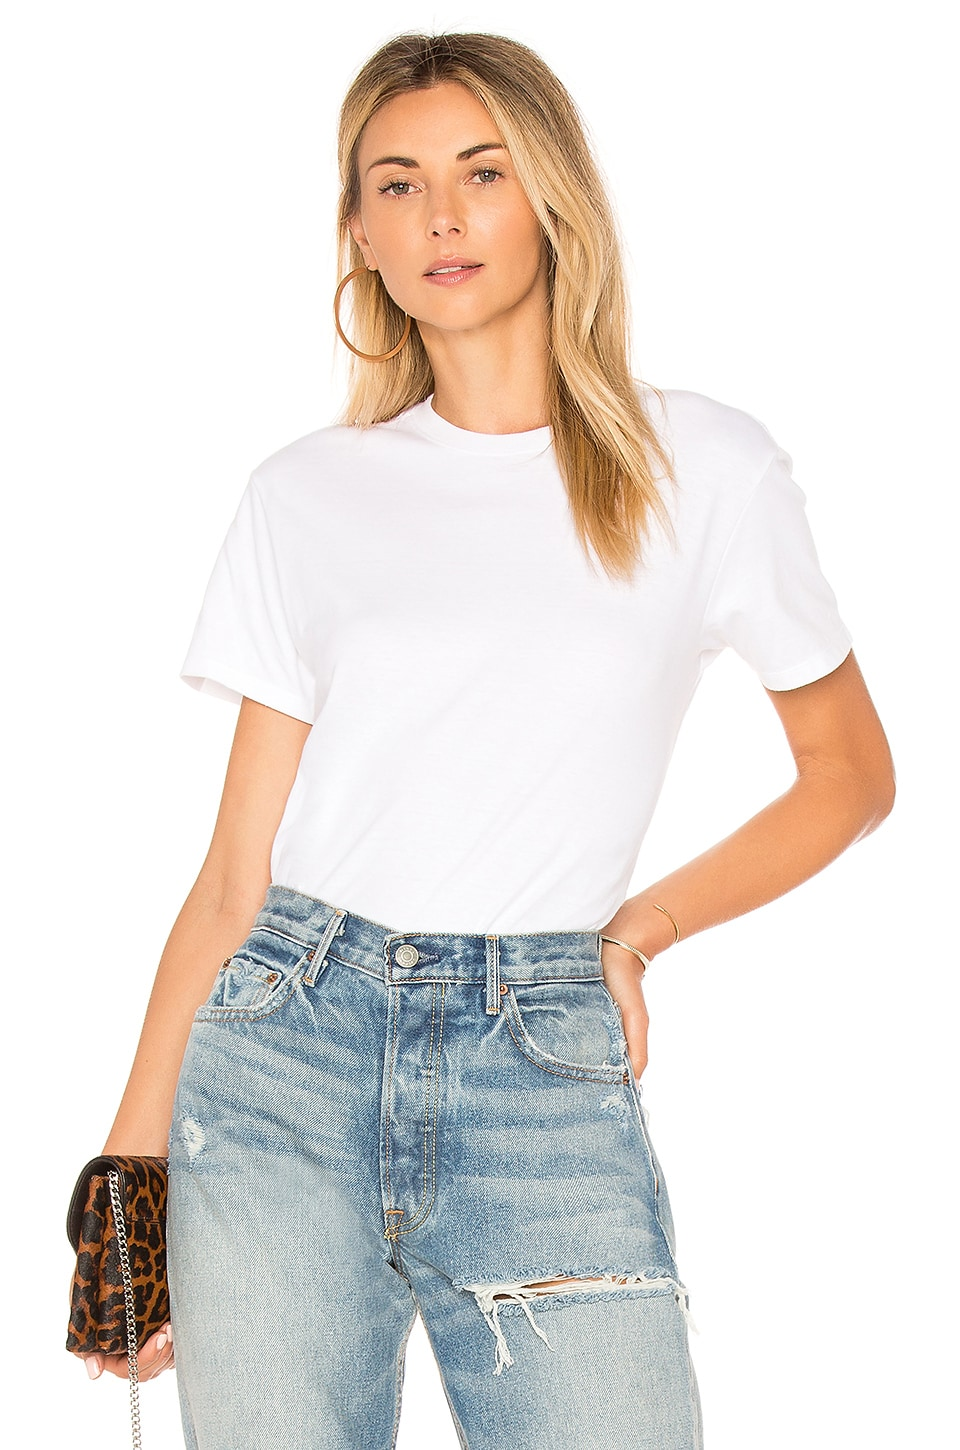 Hanes x Karla The Crew Tee in White